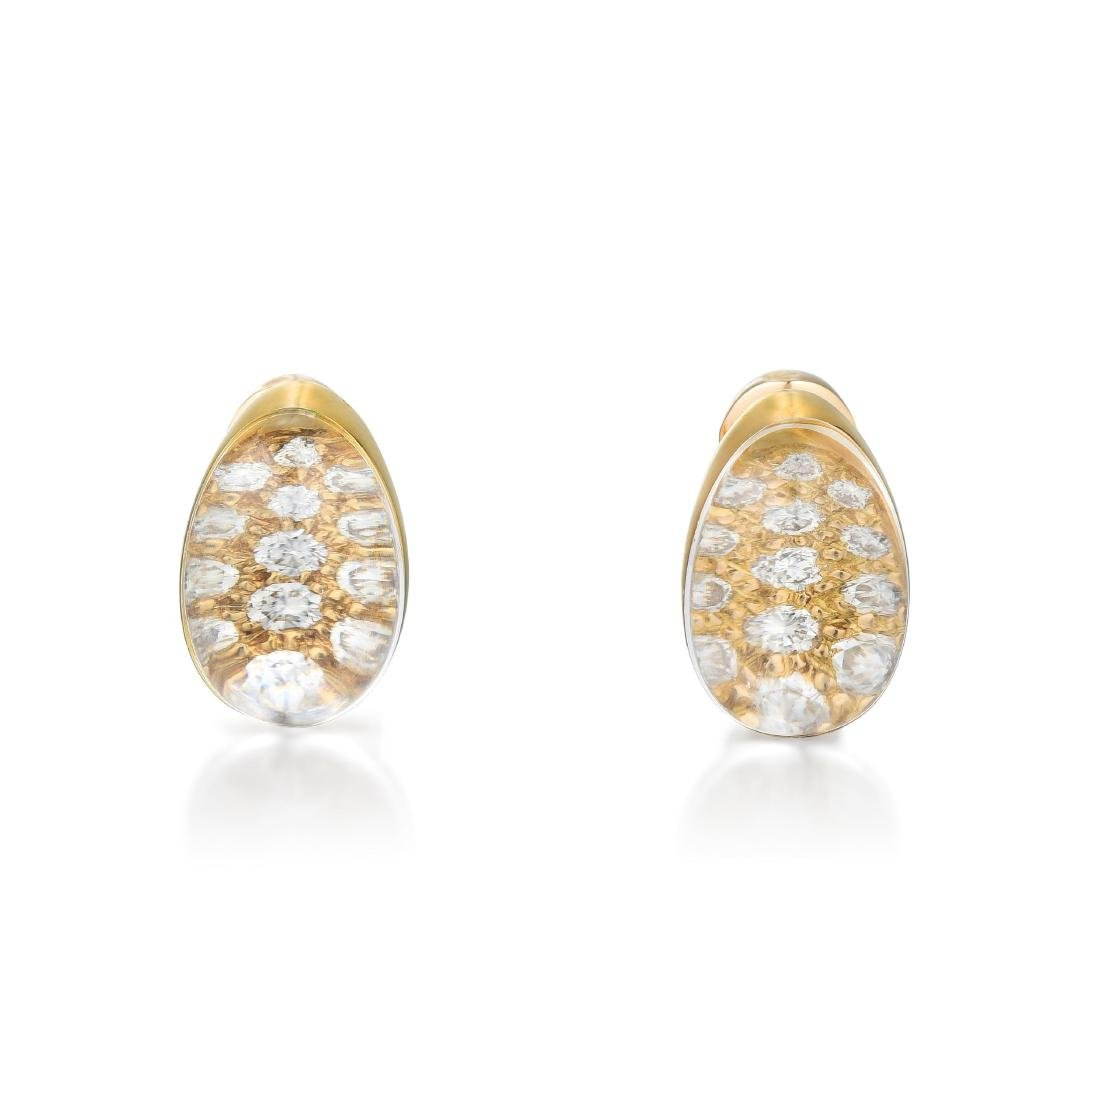 Cartier Rock Crystal and Diamond Earring and Ring Set, - 4